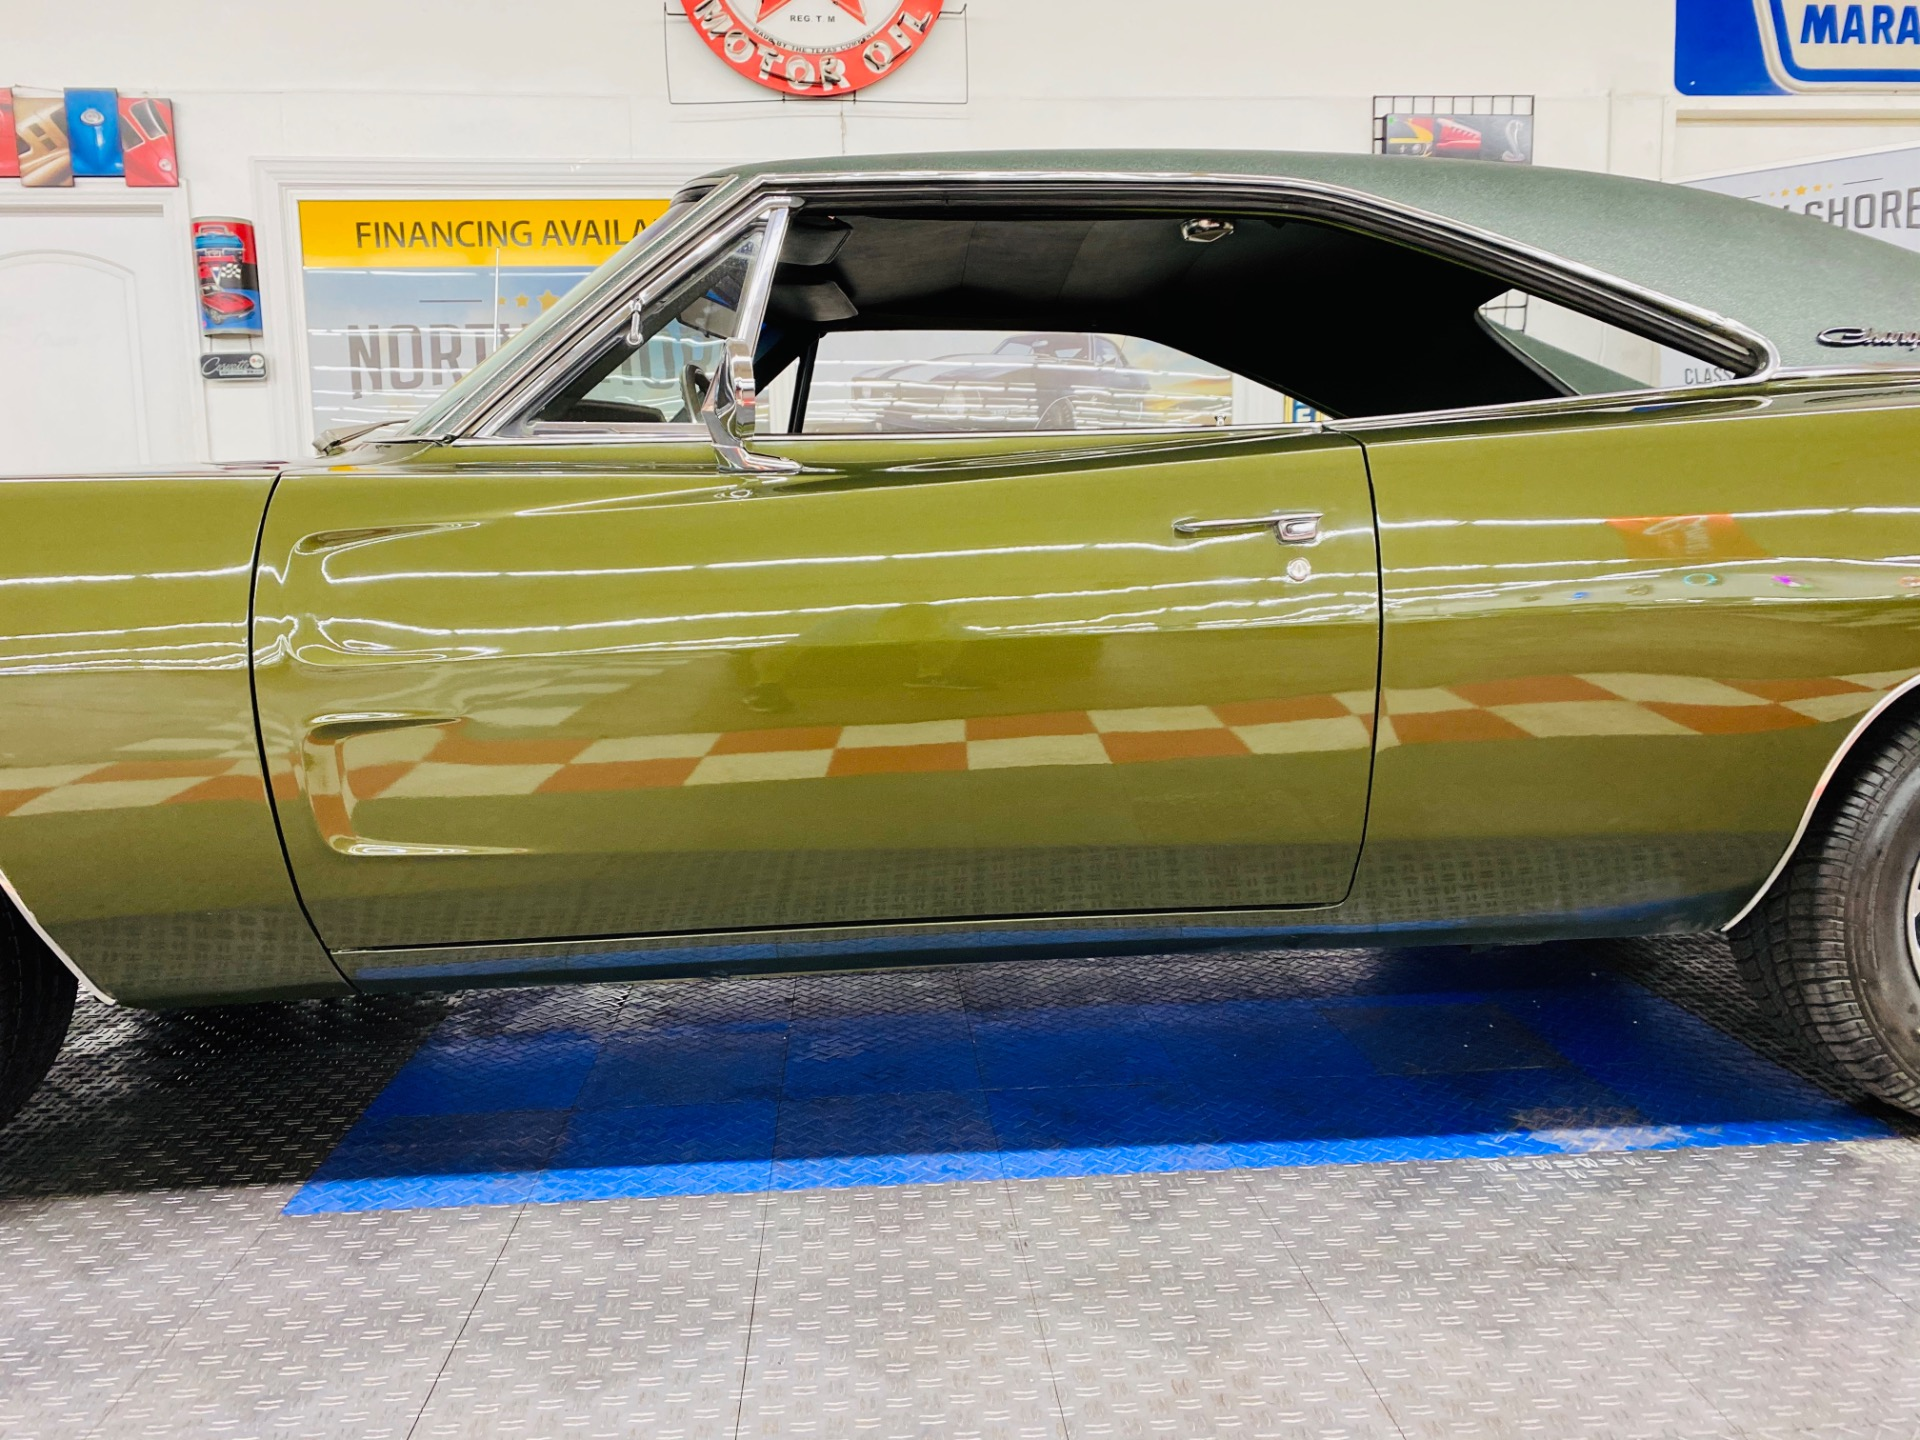 Used 1968 Dodge Charger - 383 ENGINE - LOTS OF ORIGINAL DOCS - SEE VIDEO - | Mundelein, IL